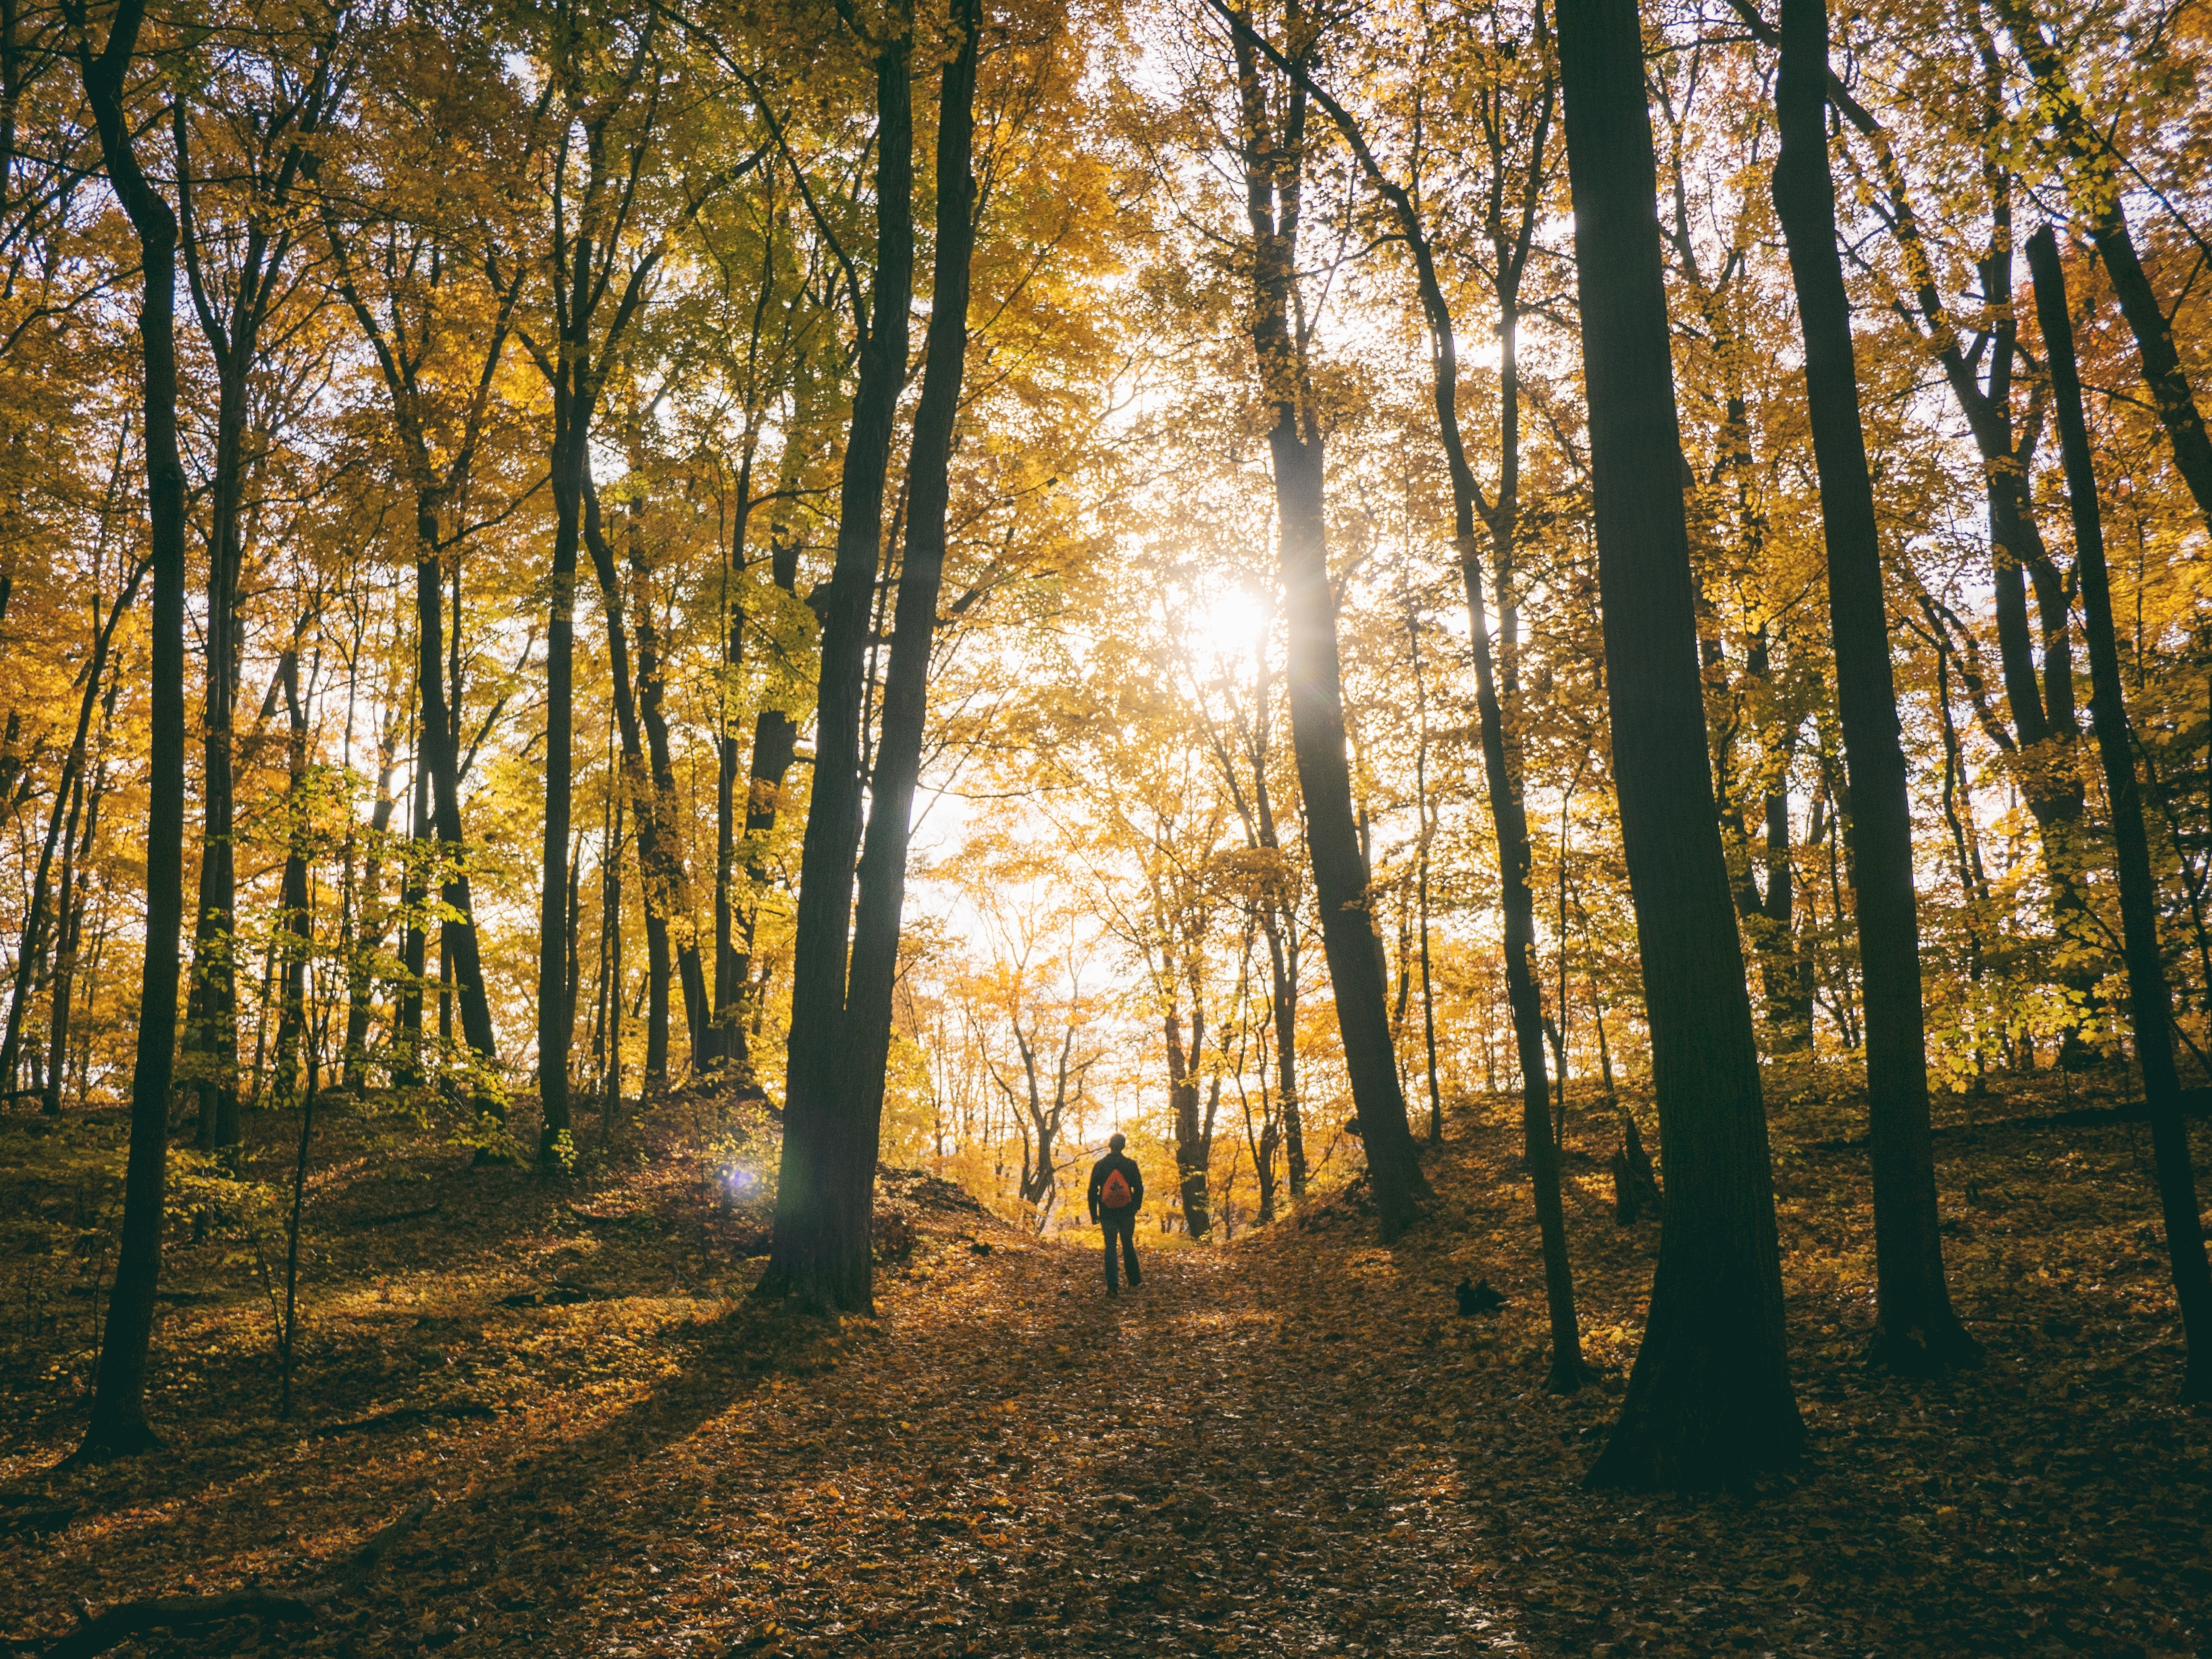 A man standing in the woods full of trees with yellow leaves in Saugatuck